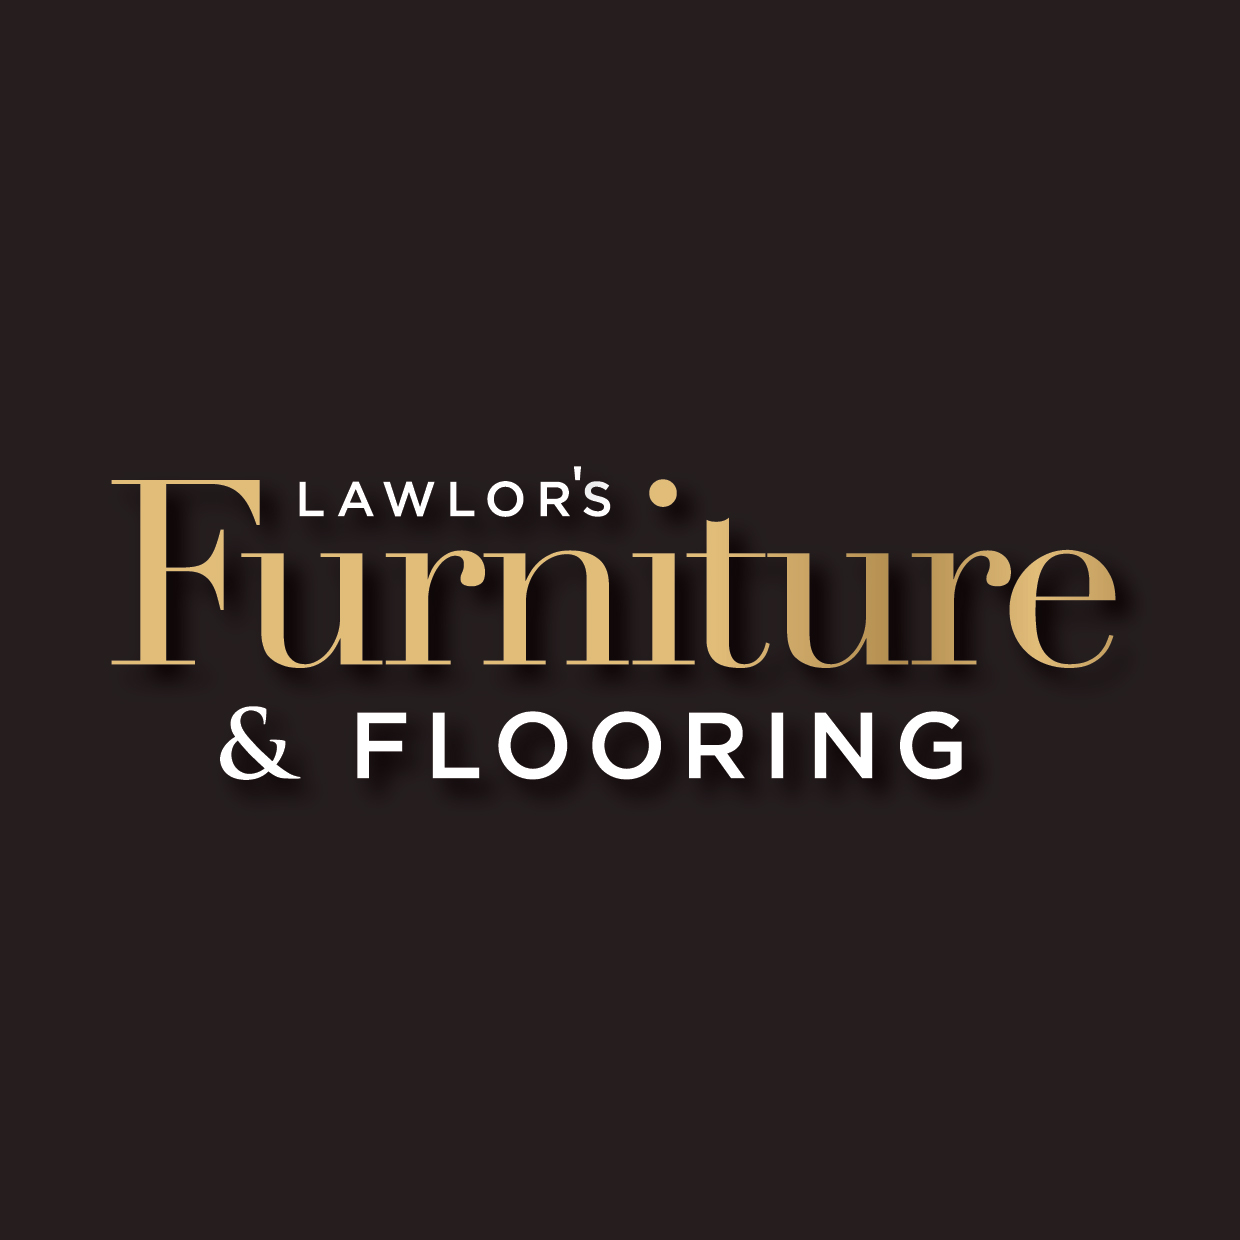 Furniture & Flooring logo